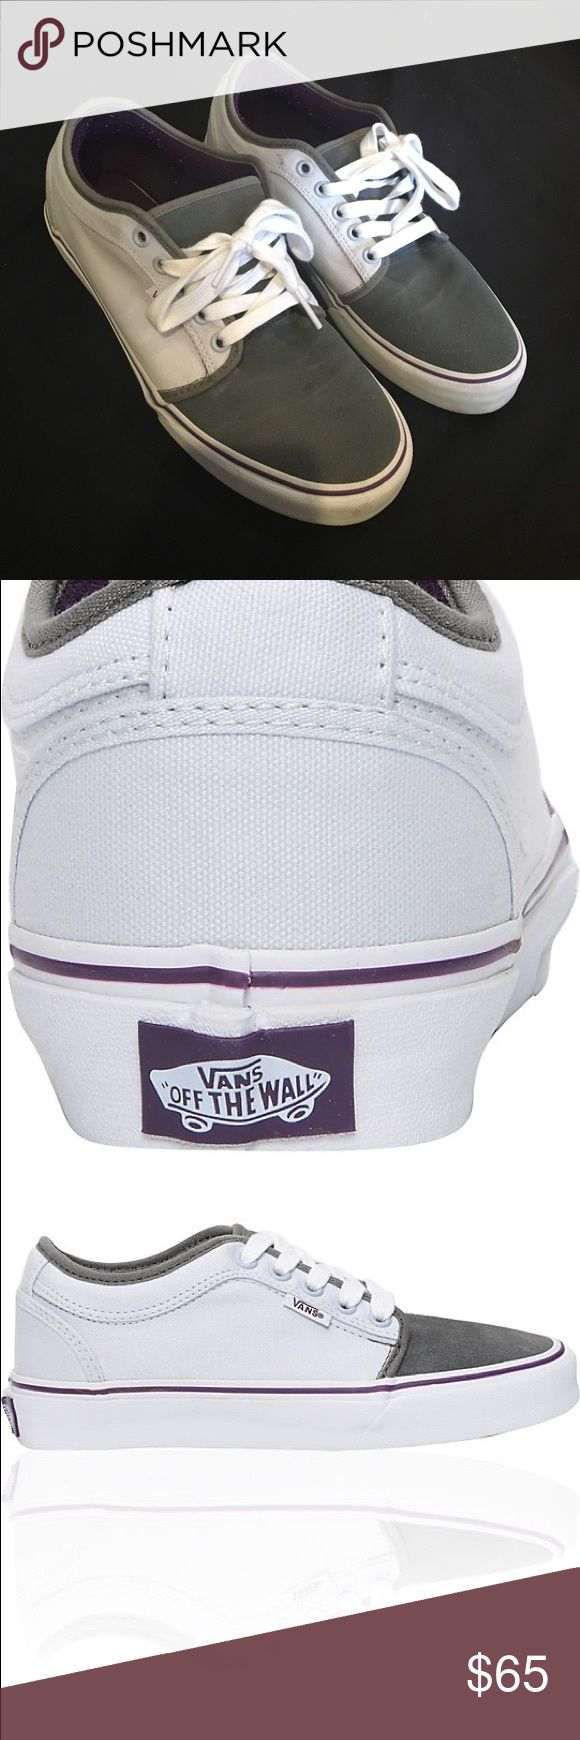 Vans Chukka Low White Grey & Purple Shoes Women's, size 10, worn once Vans Shoes Sneakers